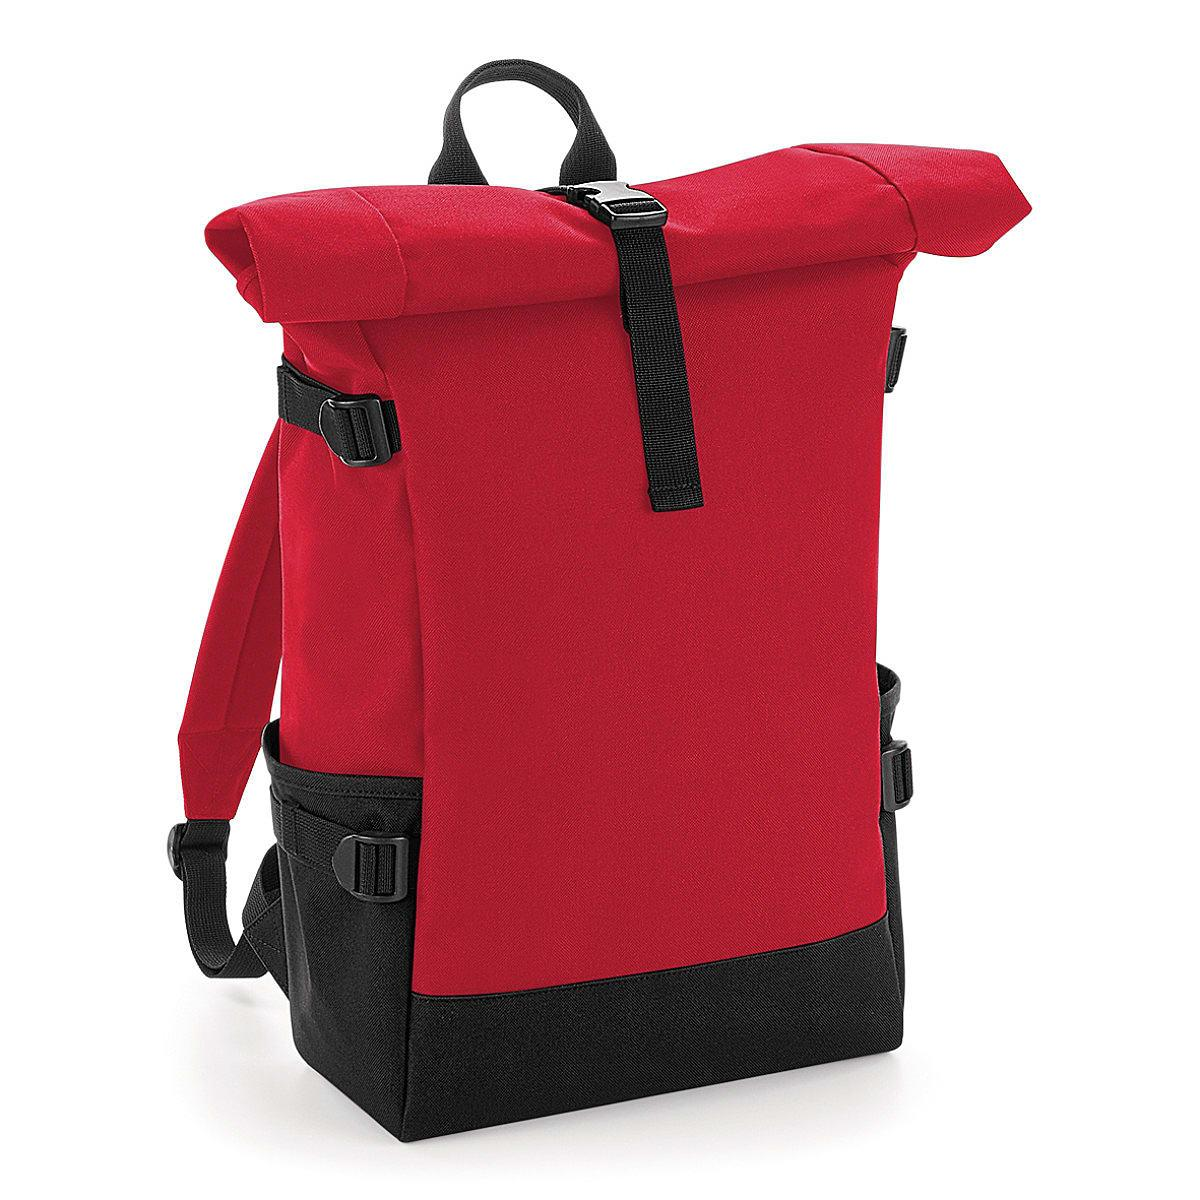 Bagbase Block Roll-Top Backpack in Classic Red / Black (Product Code: BG858)